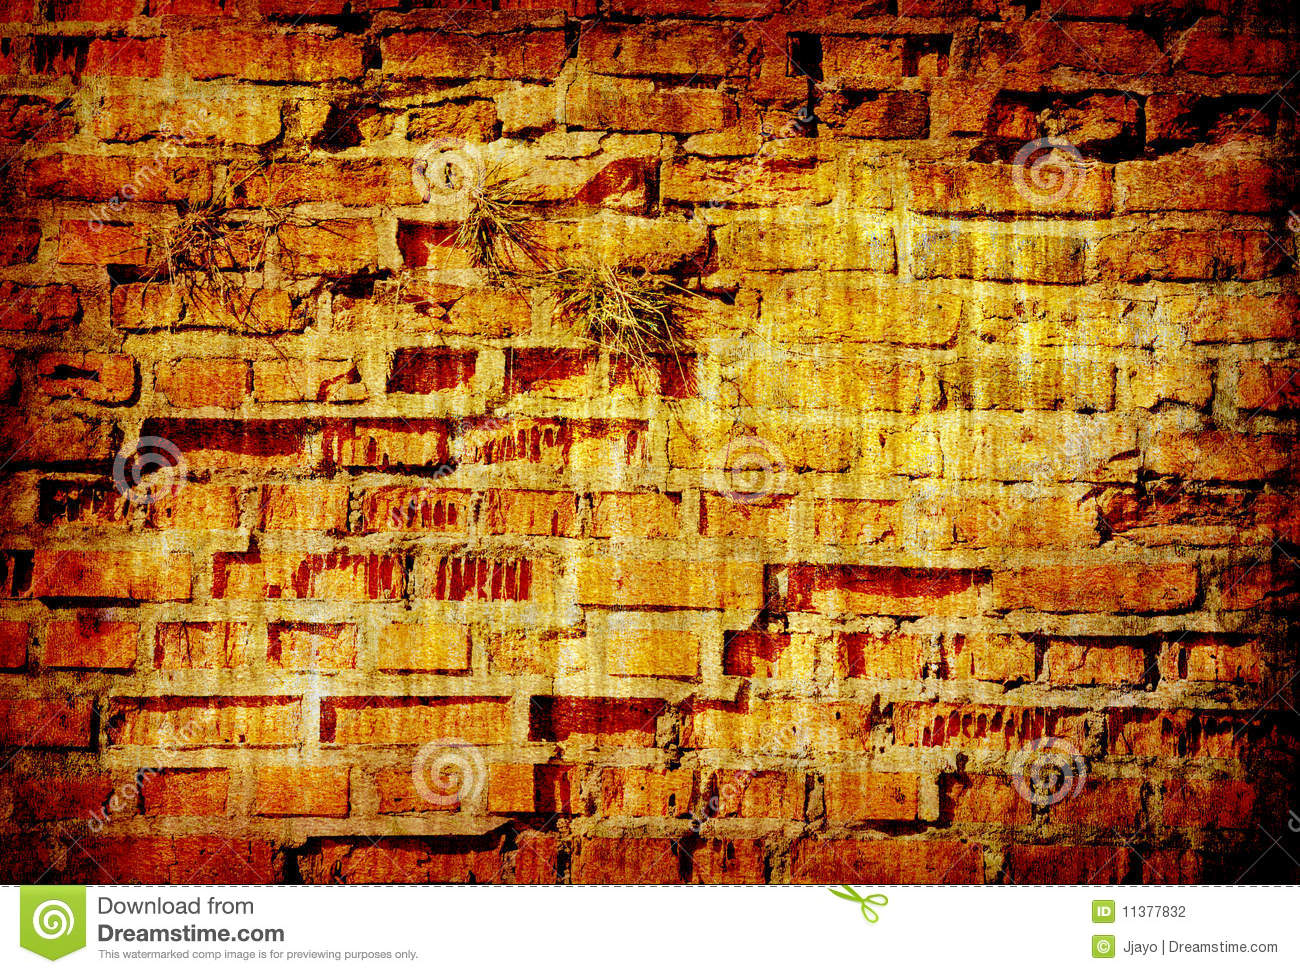 Old Paper Wallpaper Hd Abstract Grunge Background Texture Of Brick Wall Stock